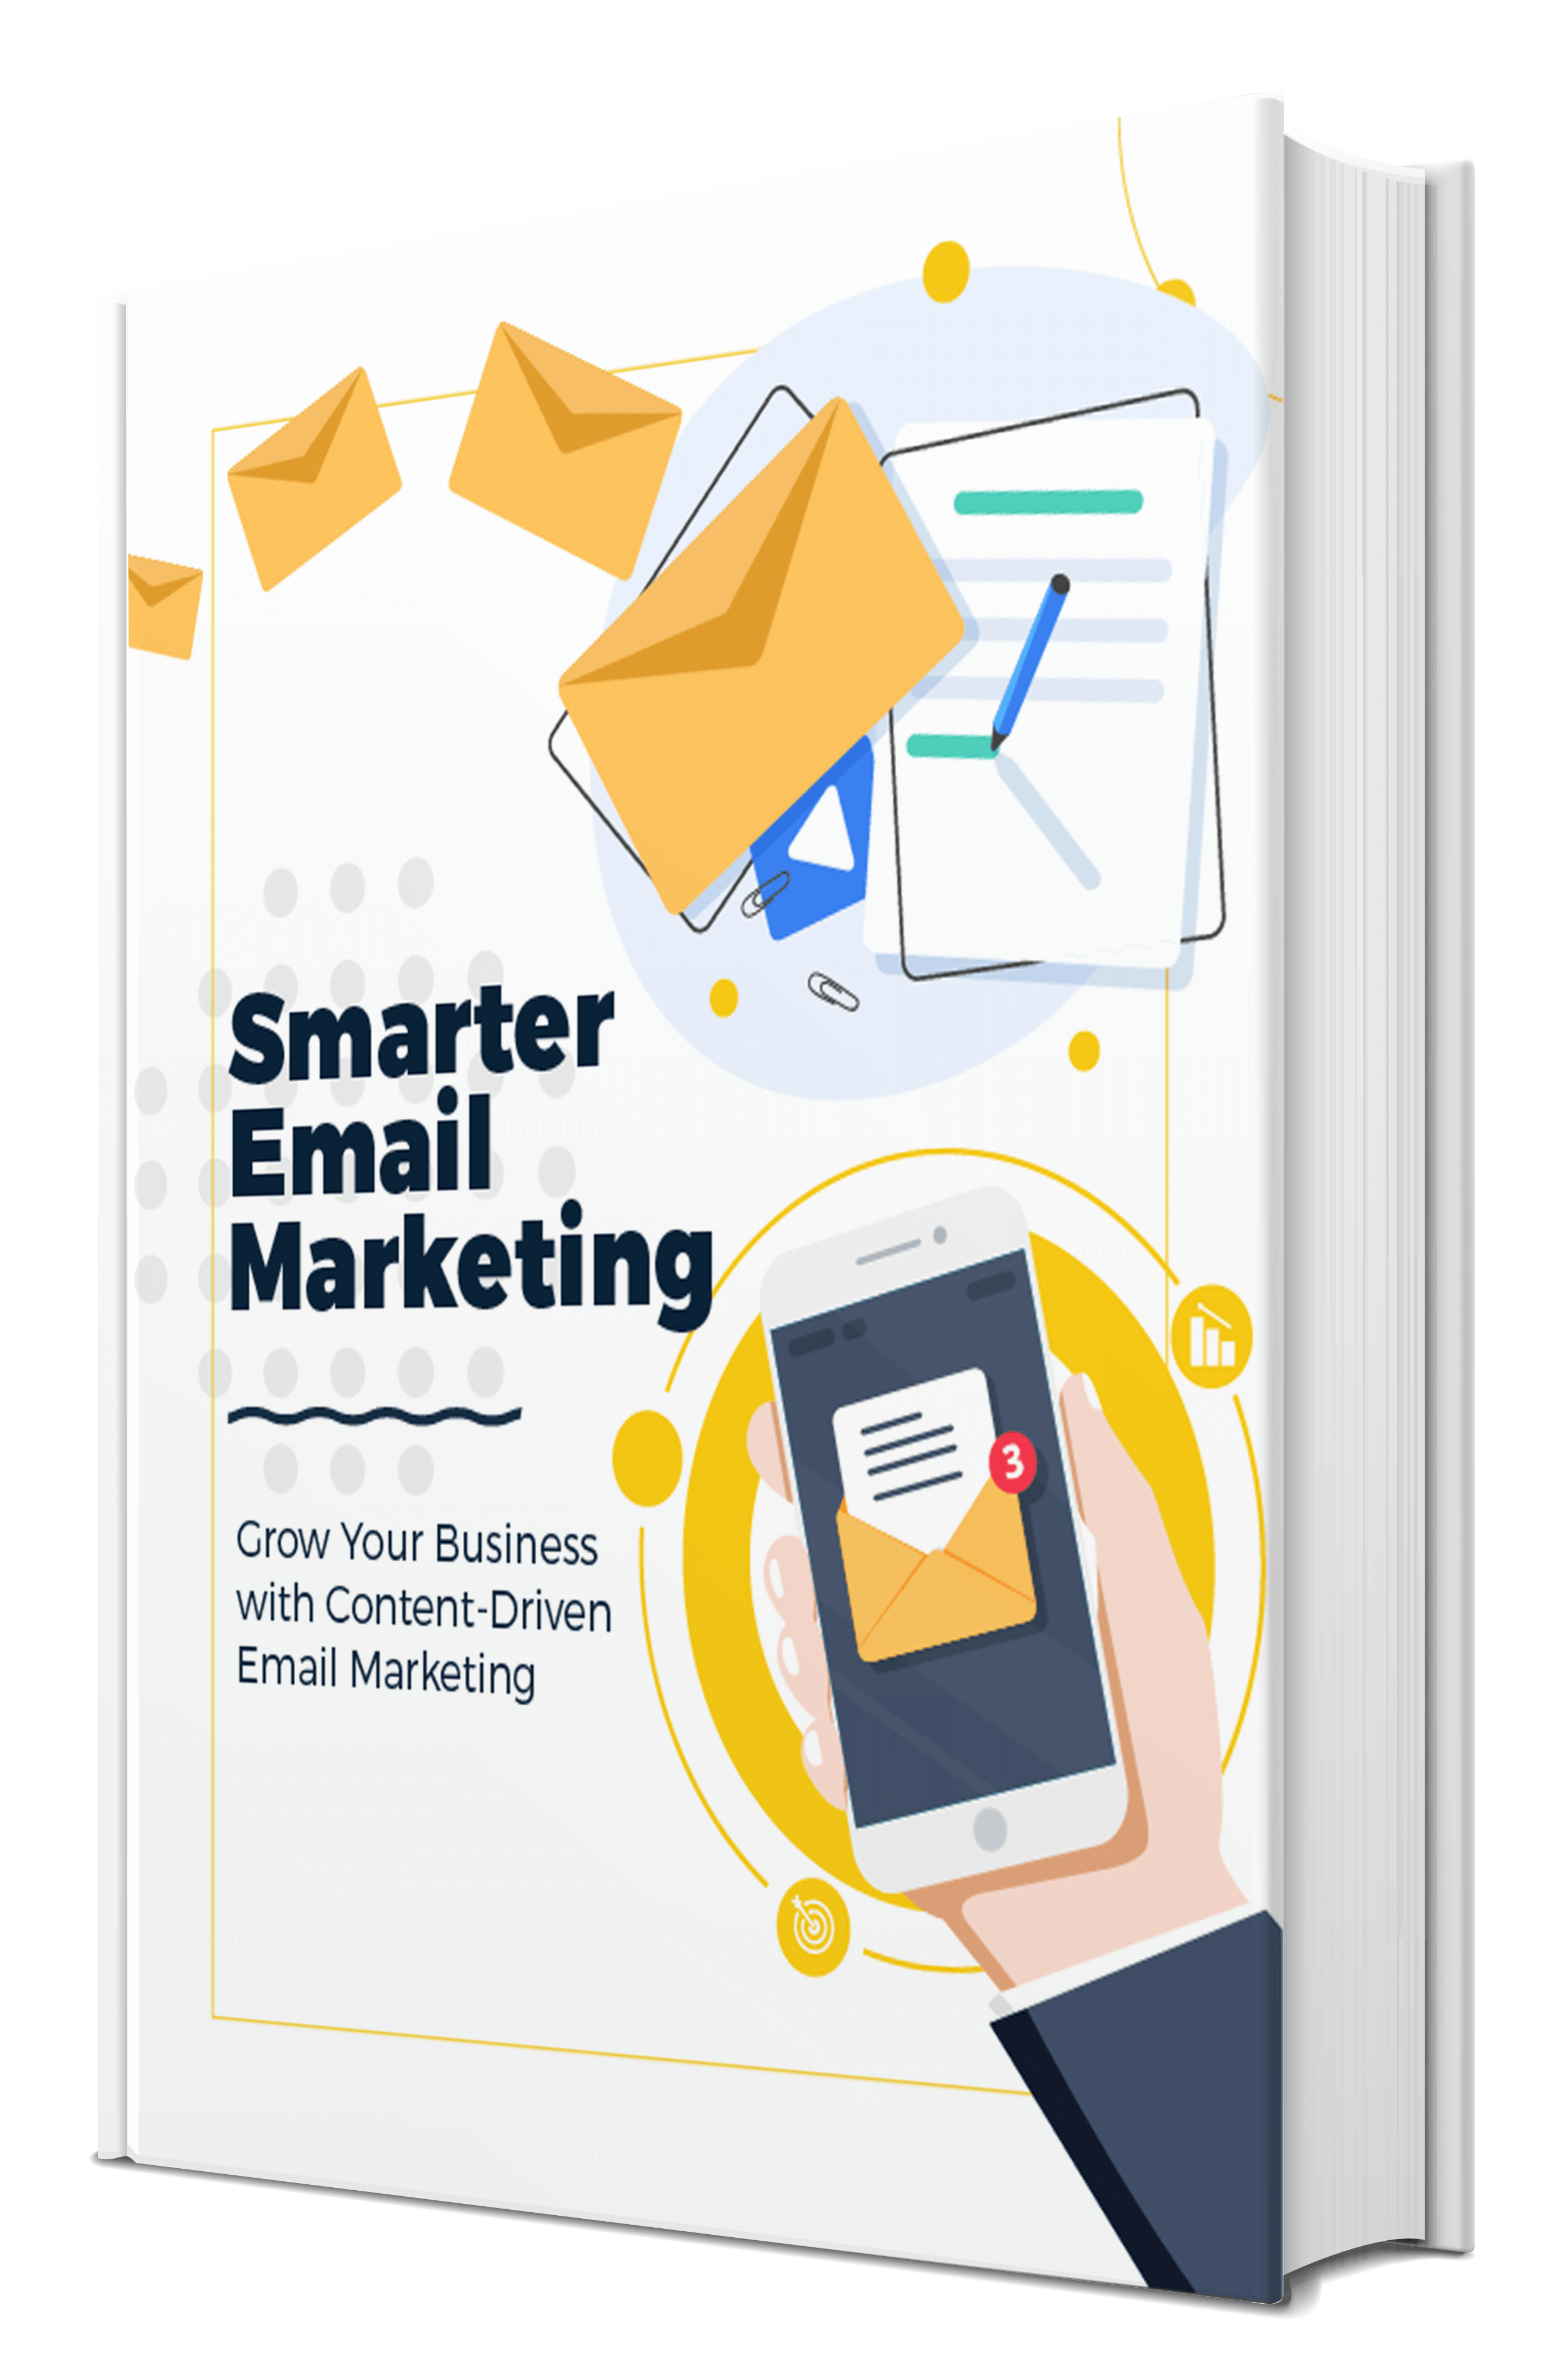 Smarter Email